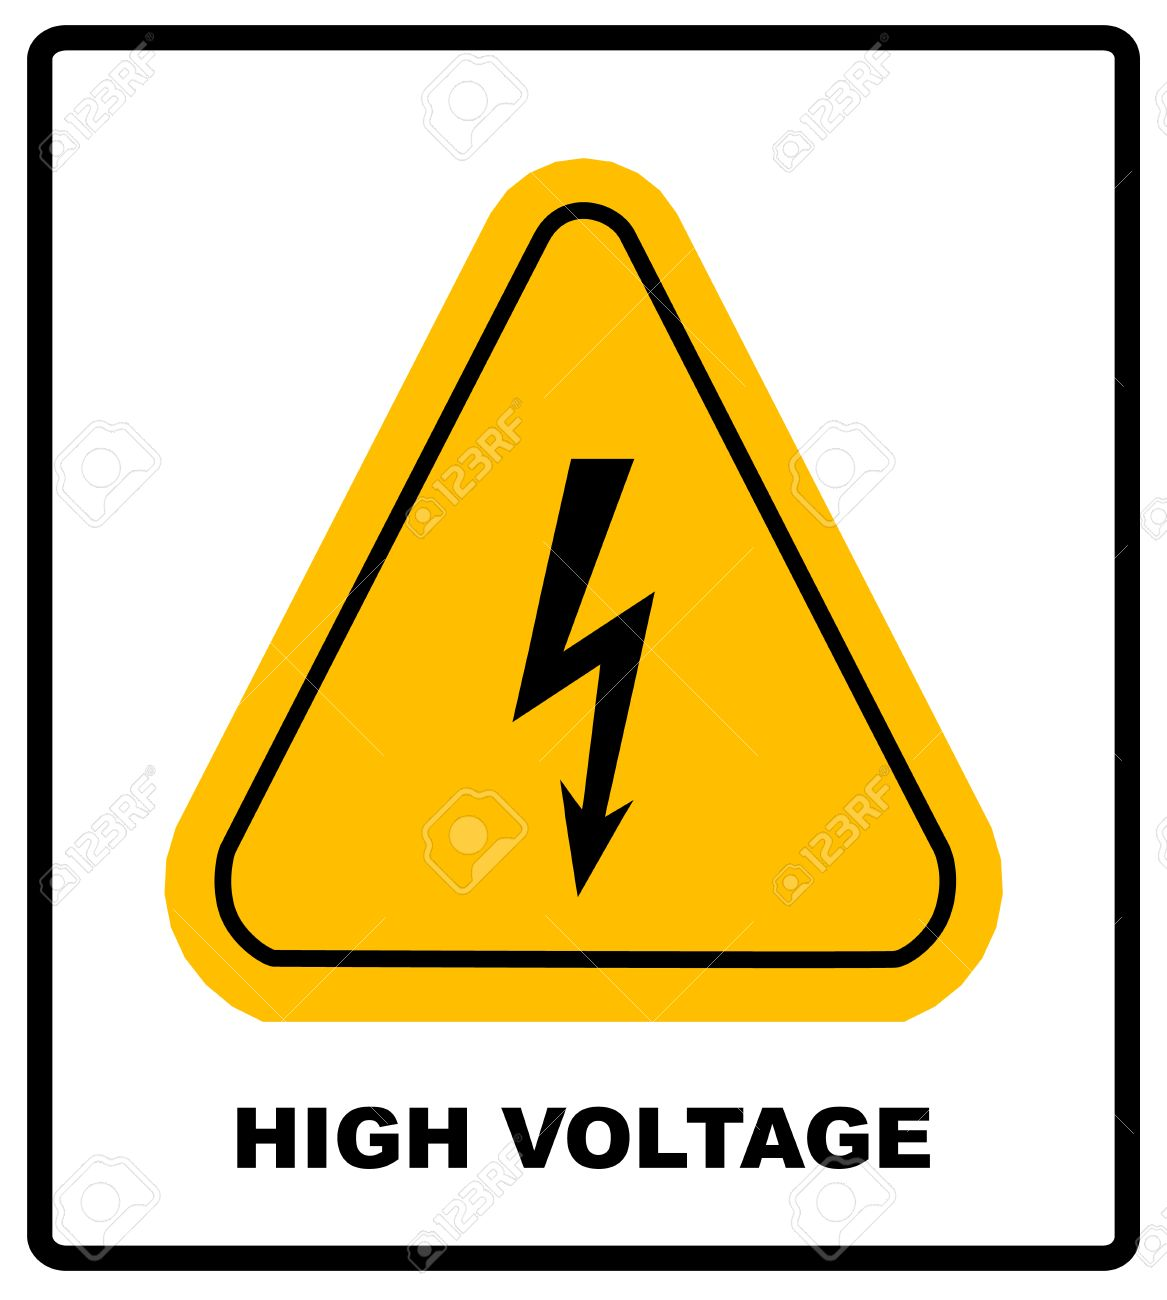 High Voltage Sign Danger Banner With Text And Symbol Black